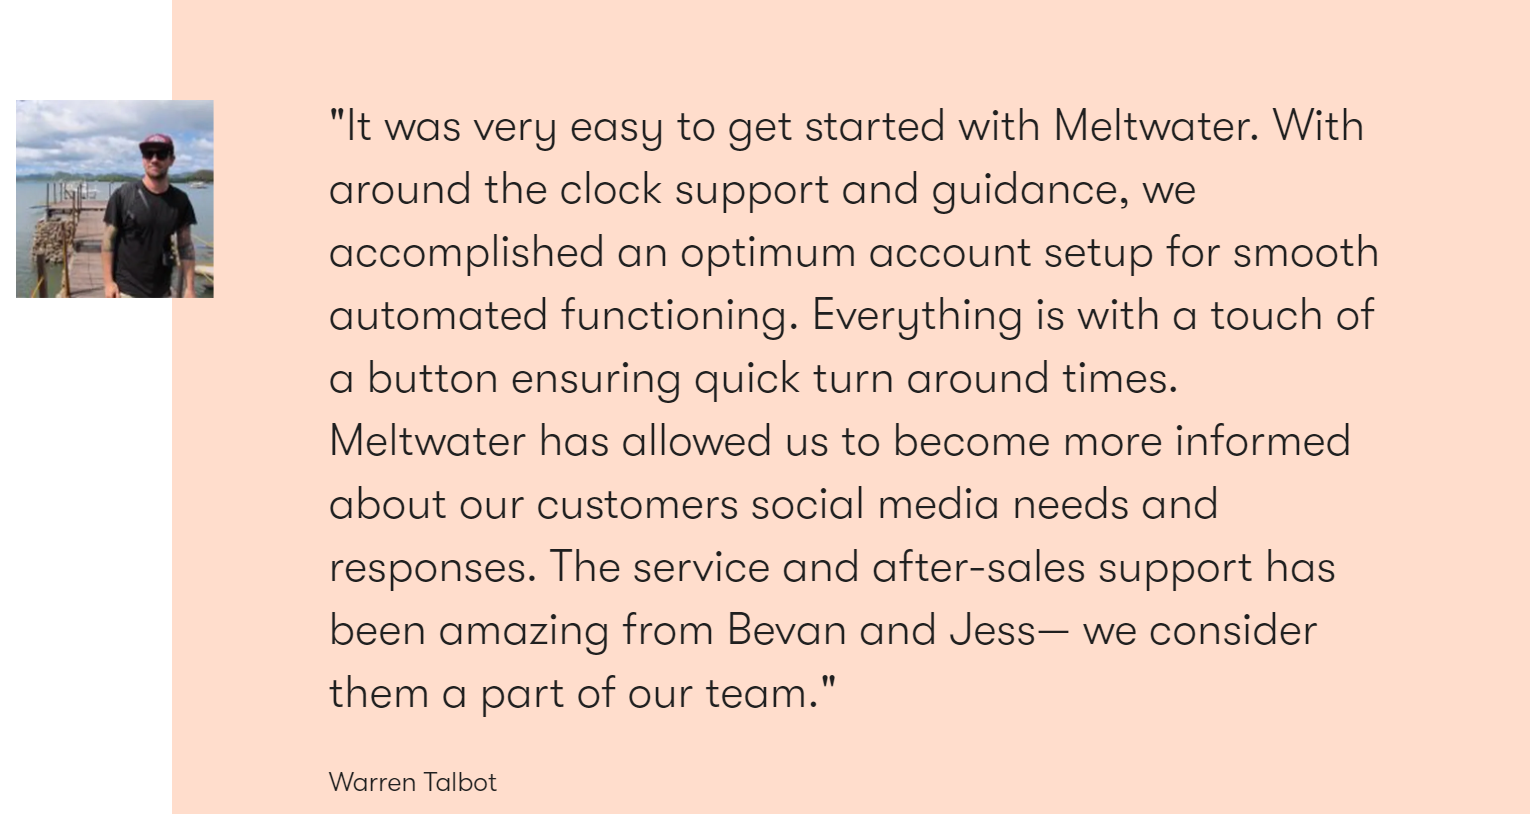 Meltwater customer quote. Using positive customer stories is a great word-of-mouth marketing practice.